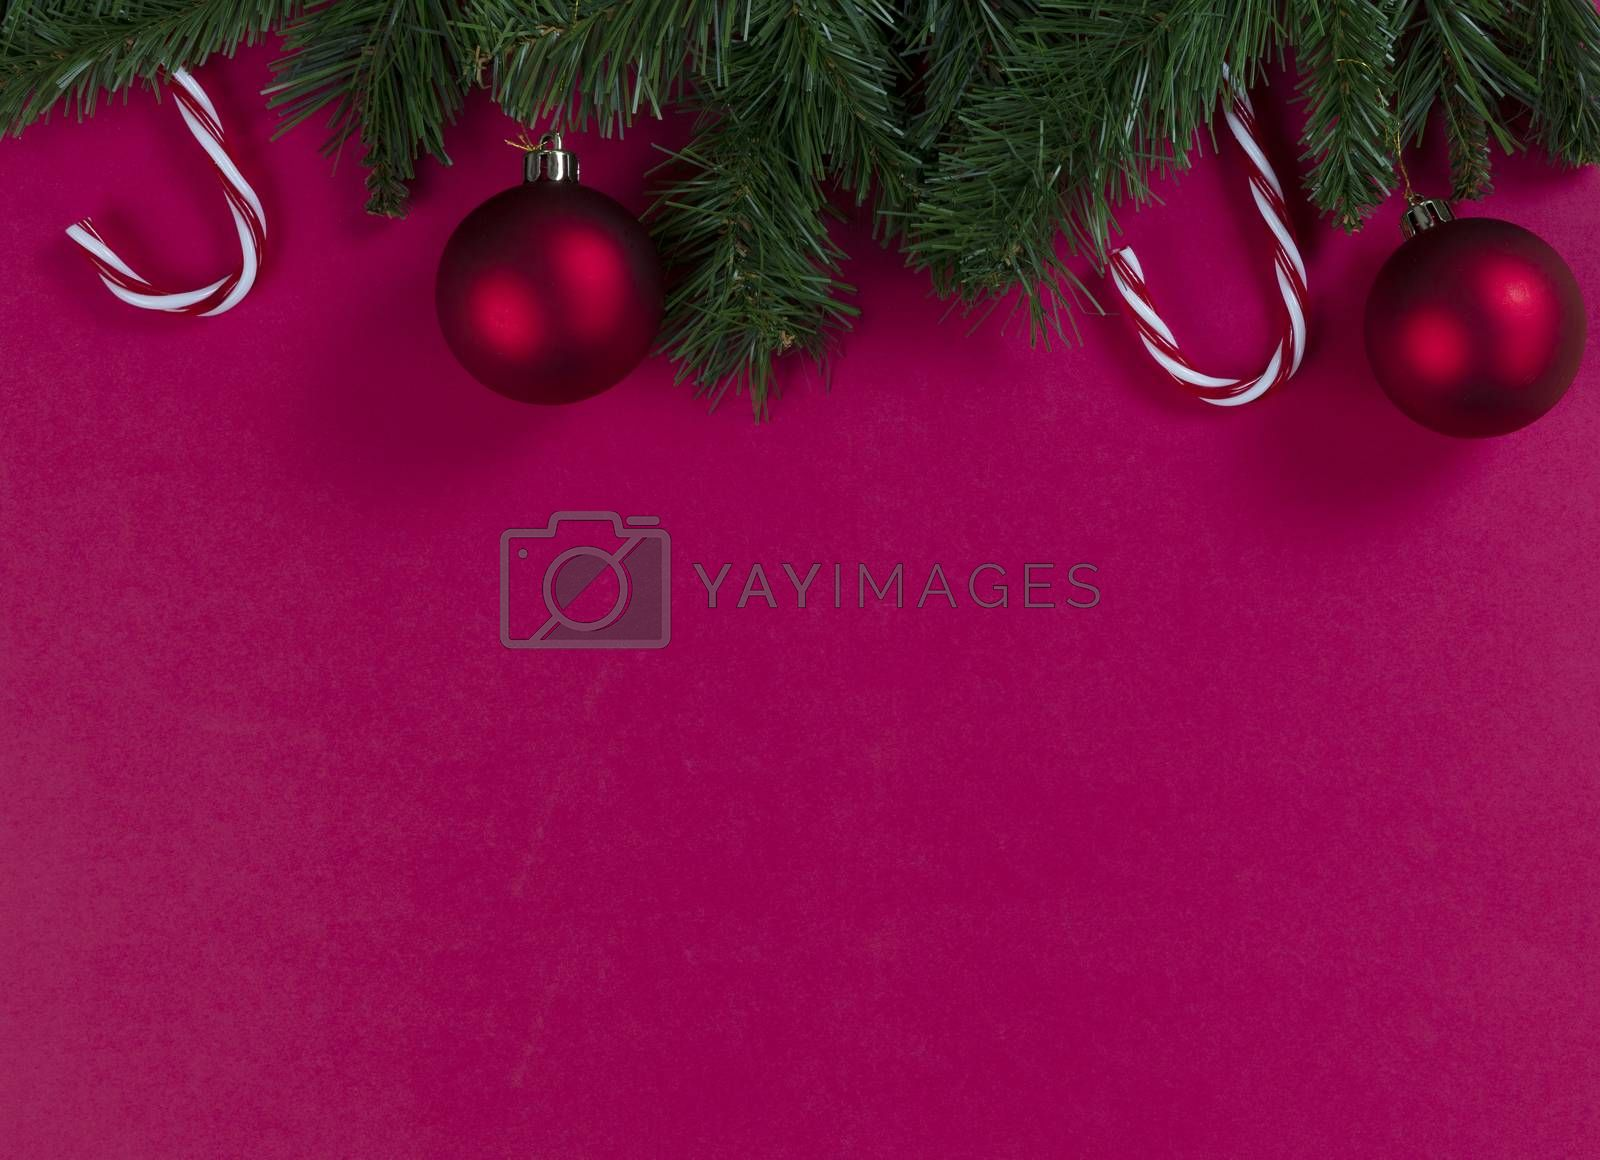 Merry Christmas and happy New Year on a red background with evergreen branches plus ball ornaments and candy canes